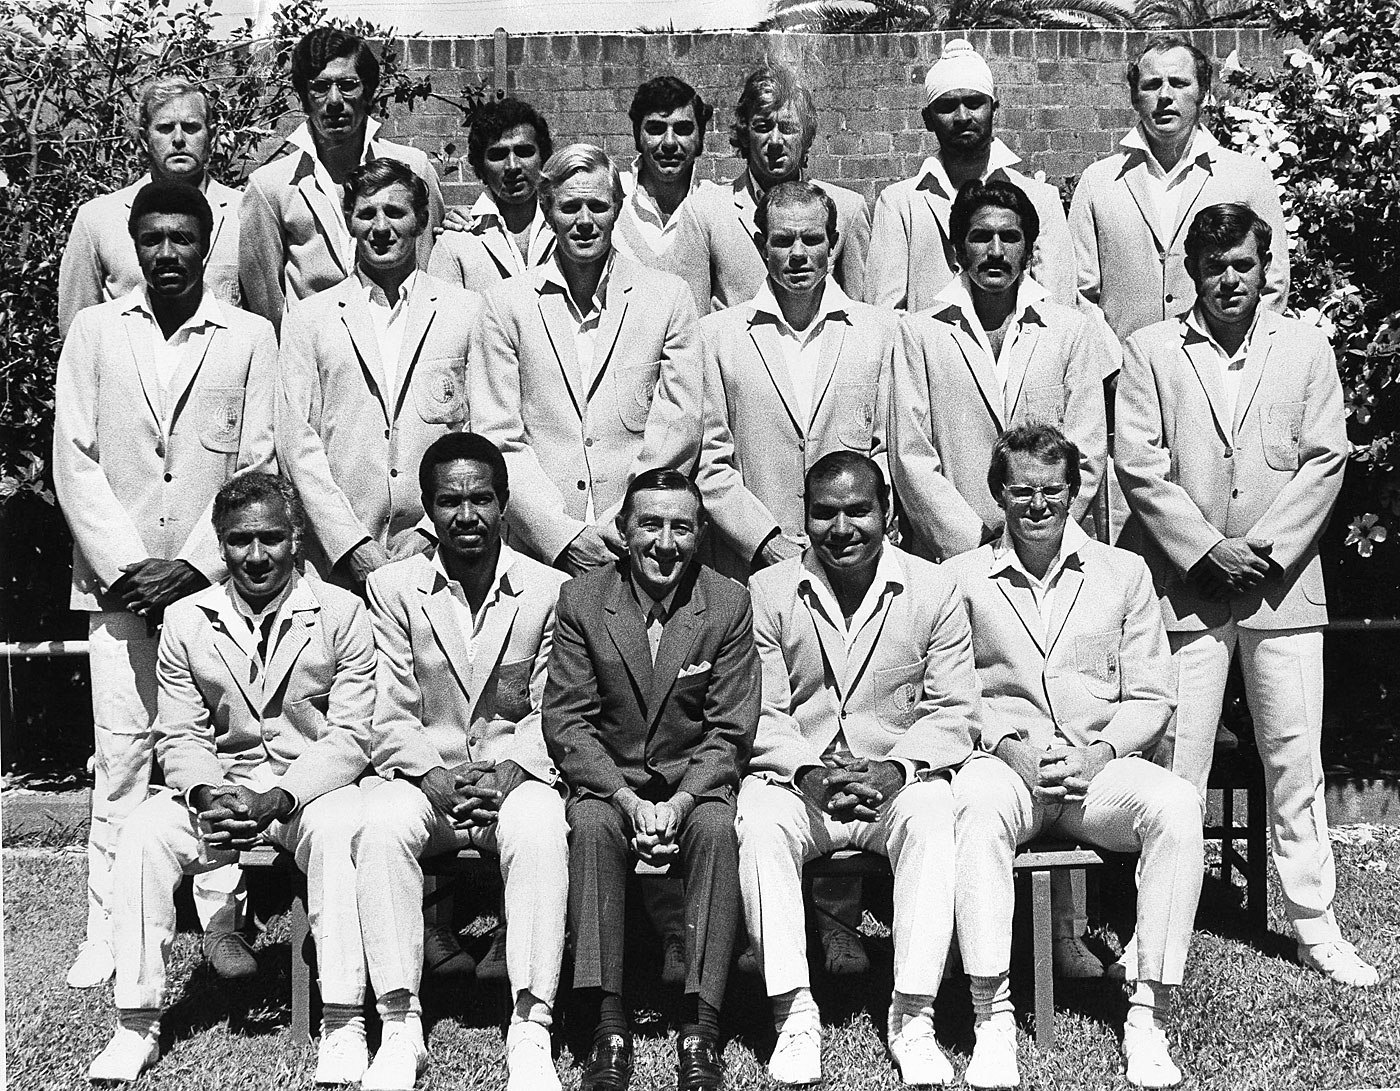 Some of Sobers' (sitting, second from left) greatest feats came for the World XI against the Australians in 1971-72